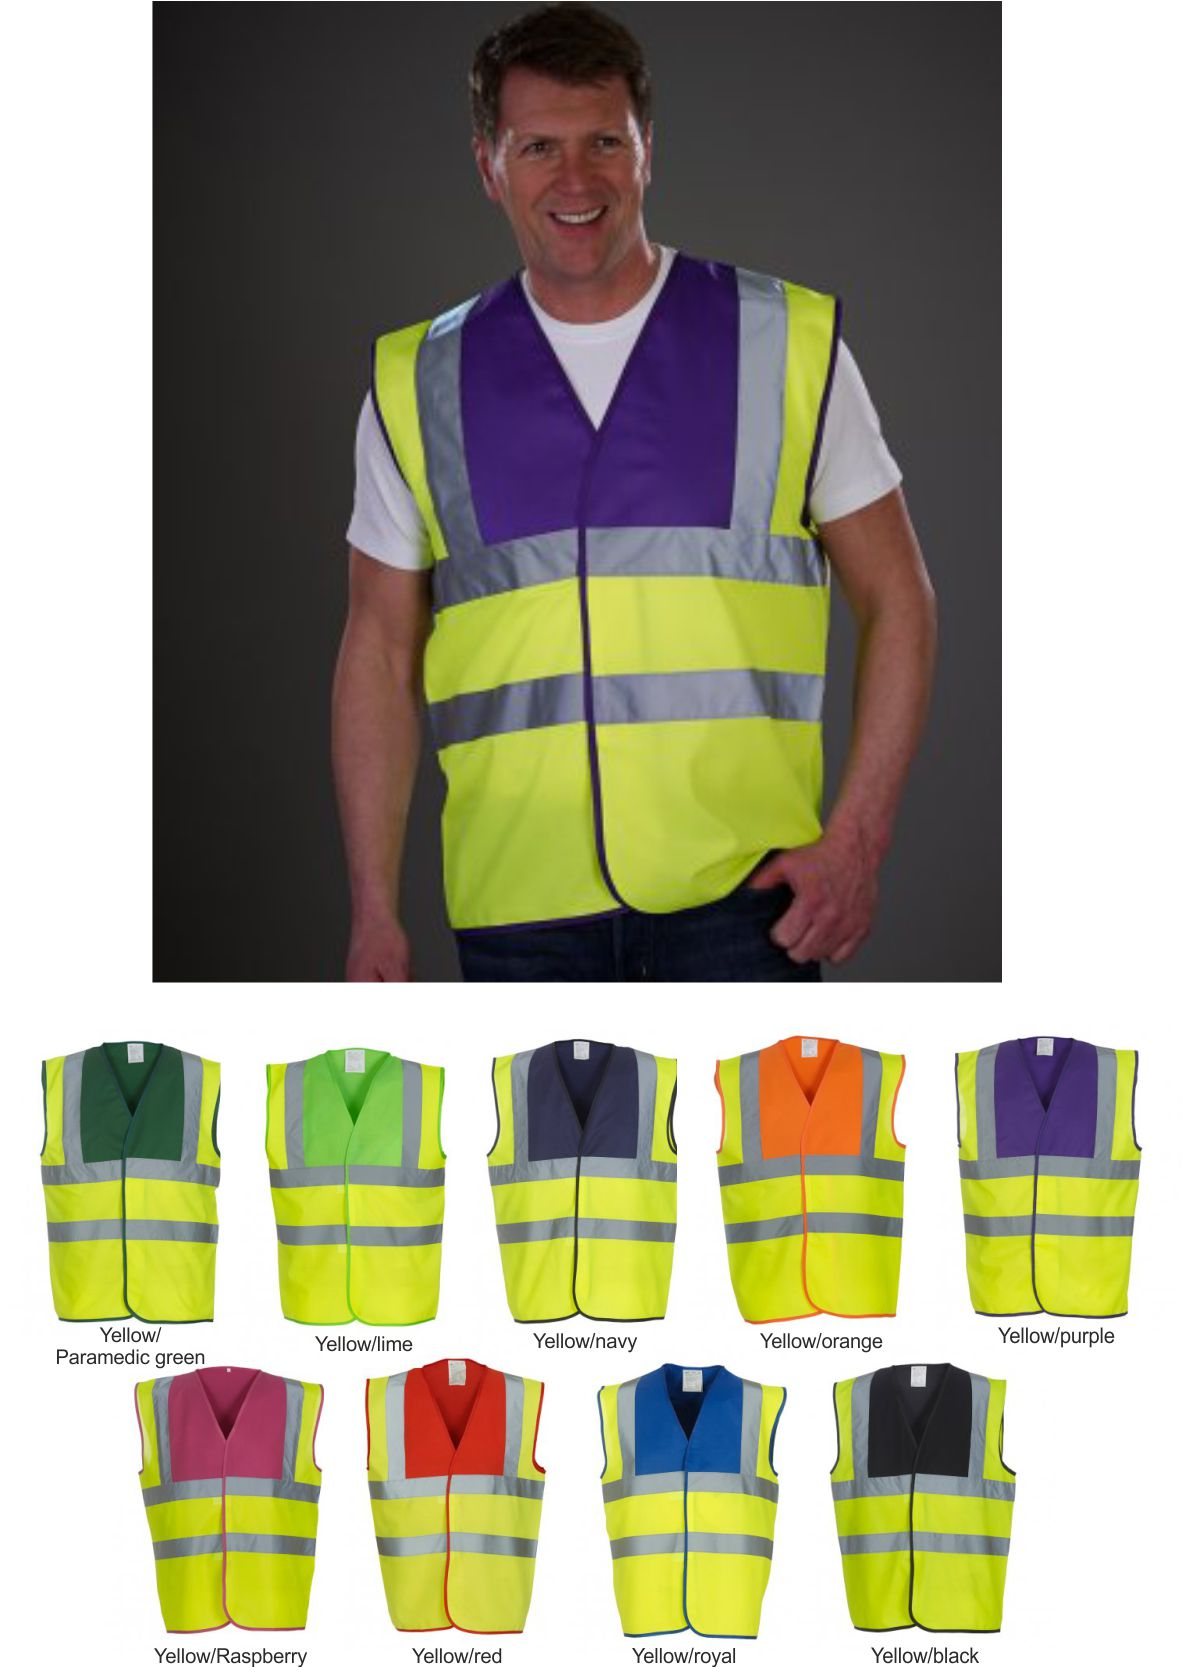 1 x Yoko Hi-Vis Jacket in Yellow//Red- Security Fire First Responder Ambulance